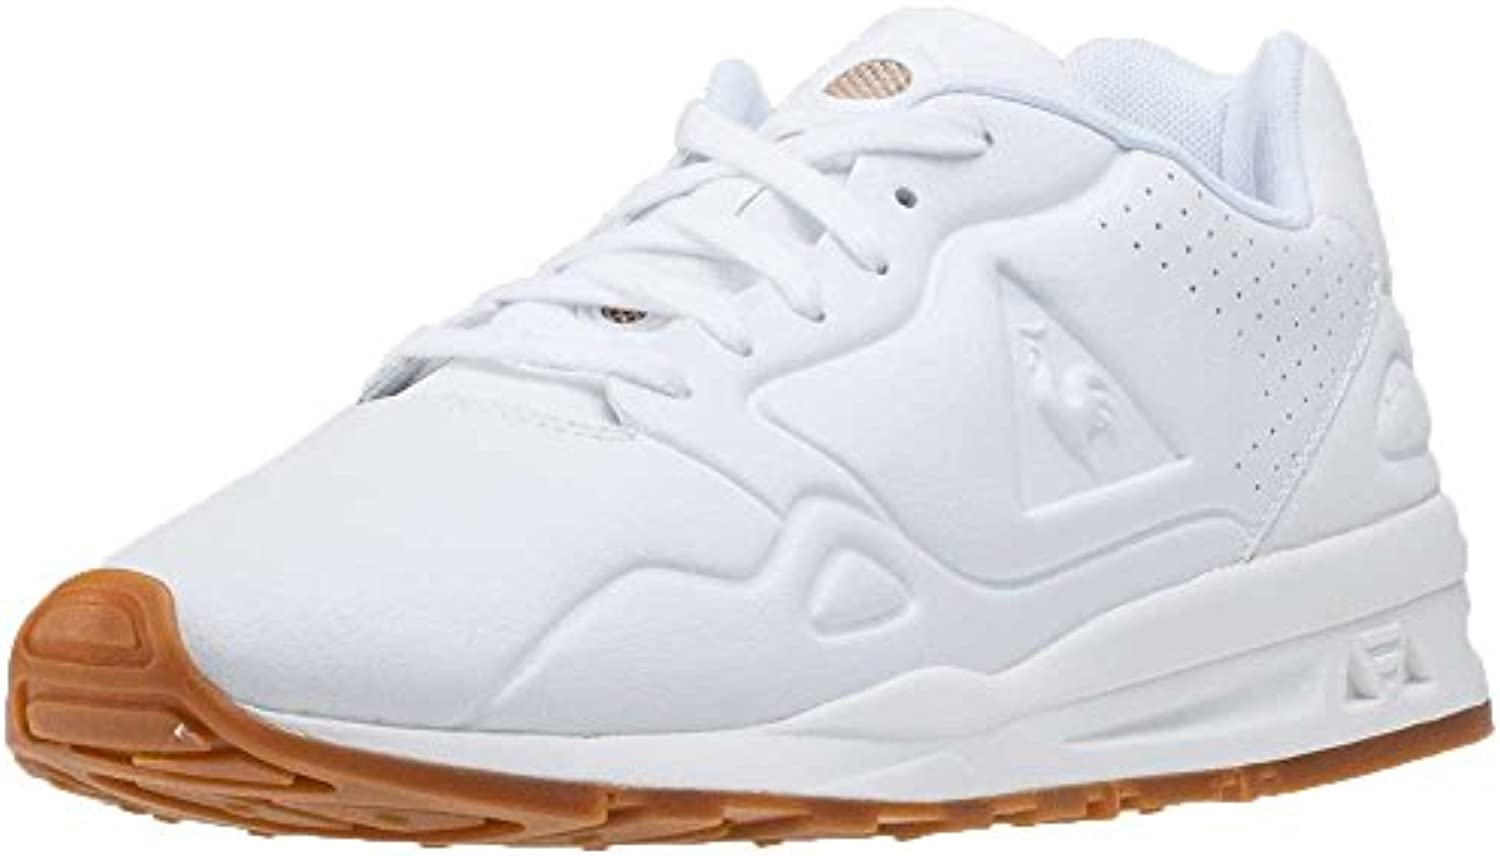 Le Coq Sportif LCS R9XX S Leather Optical White 1620185  Turnschuhe